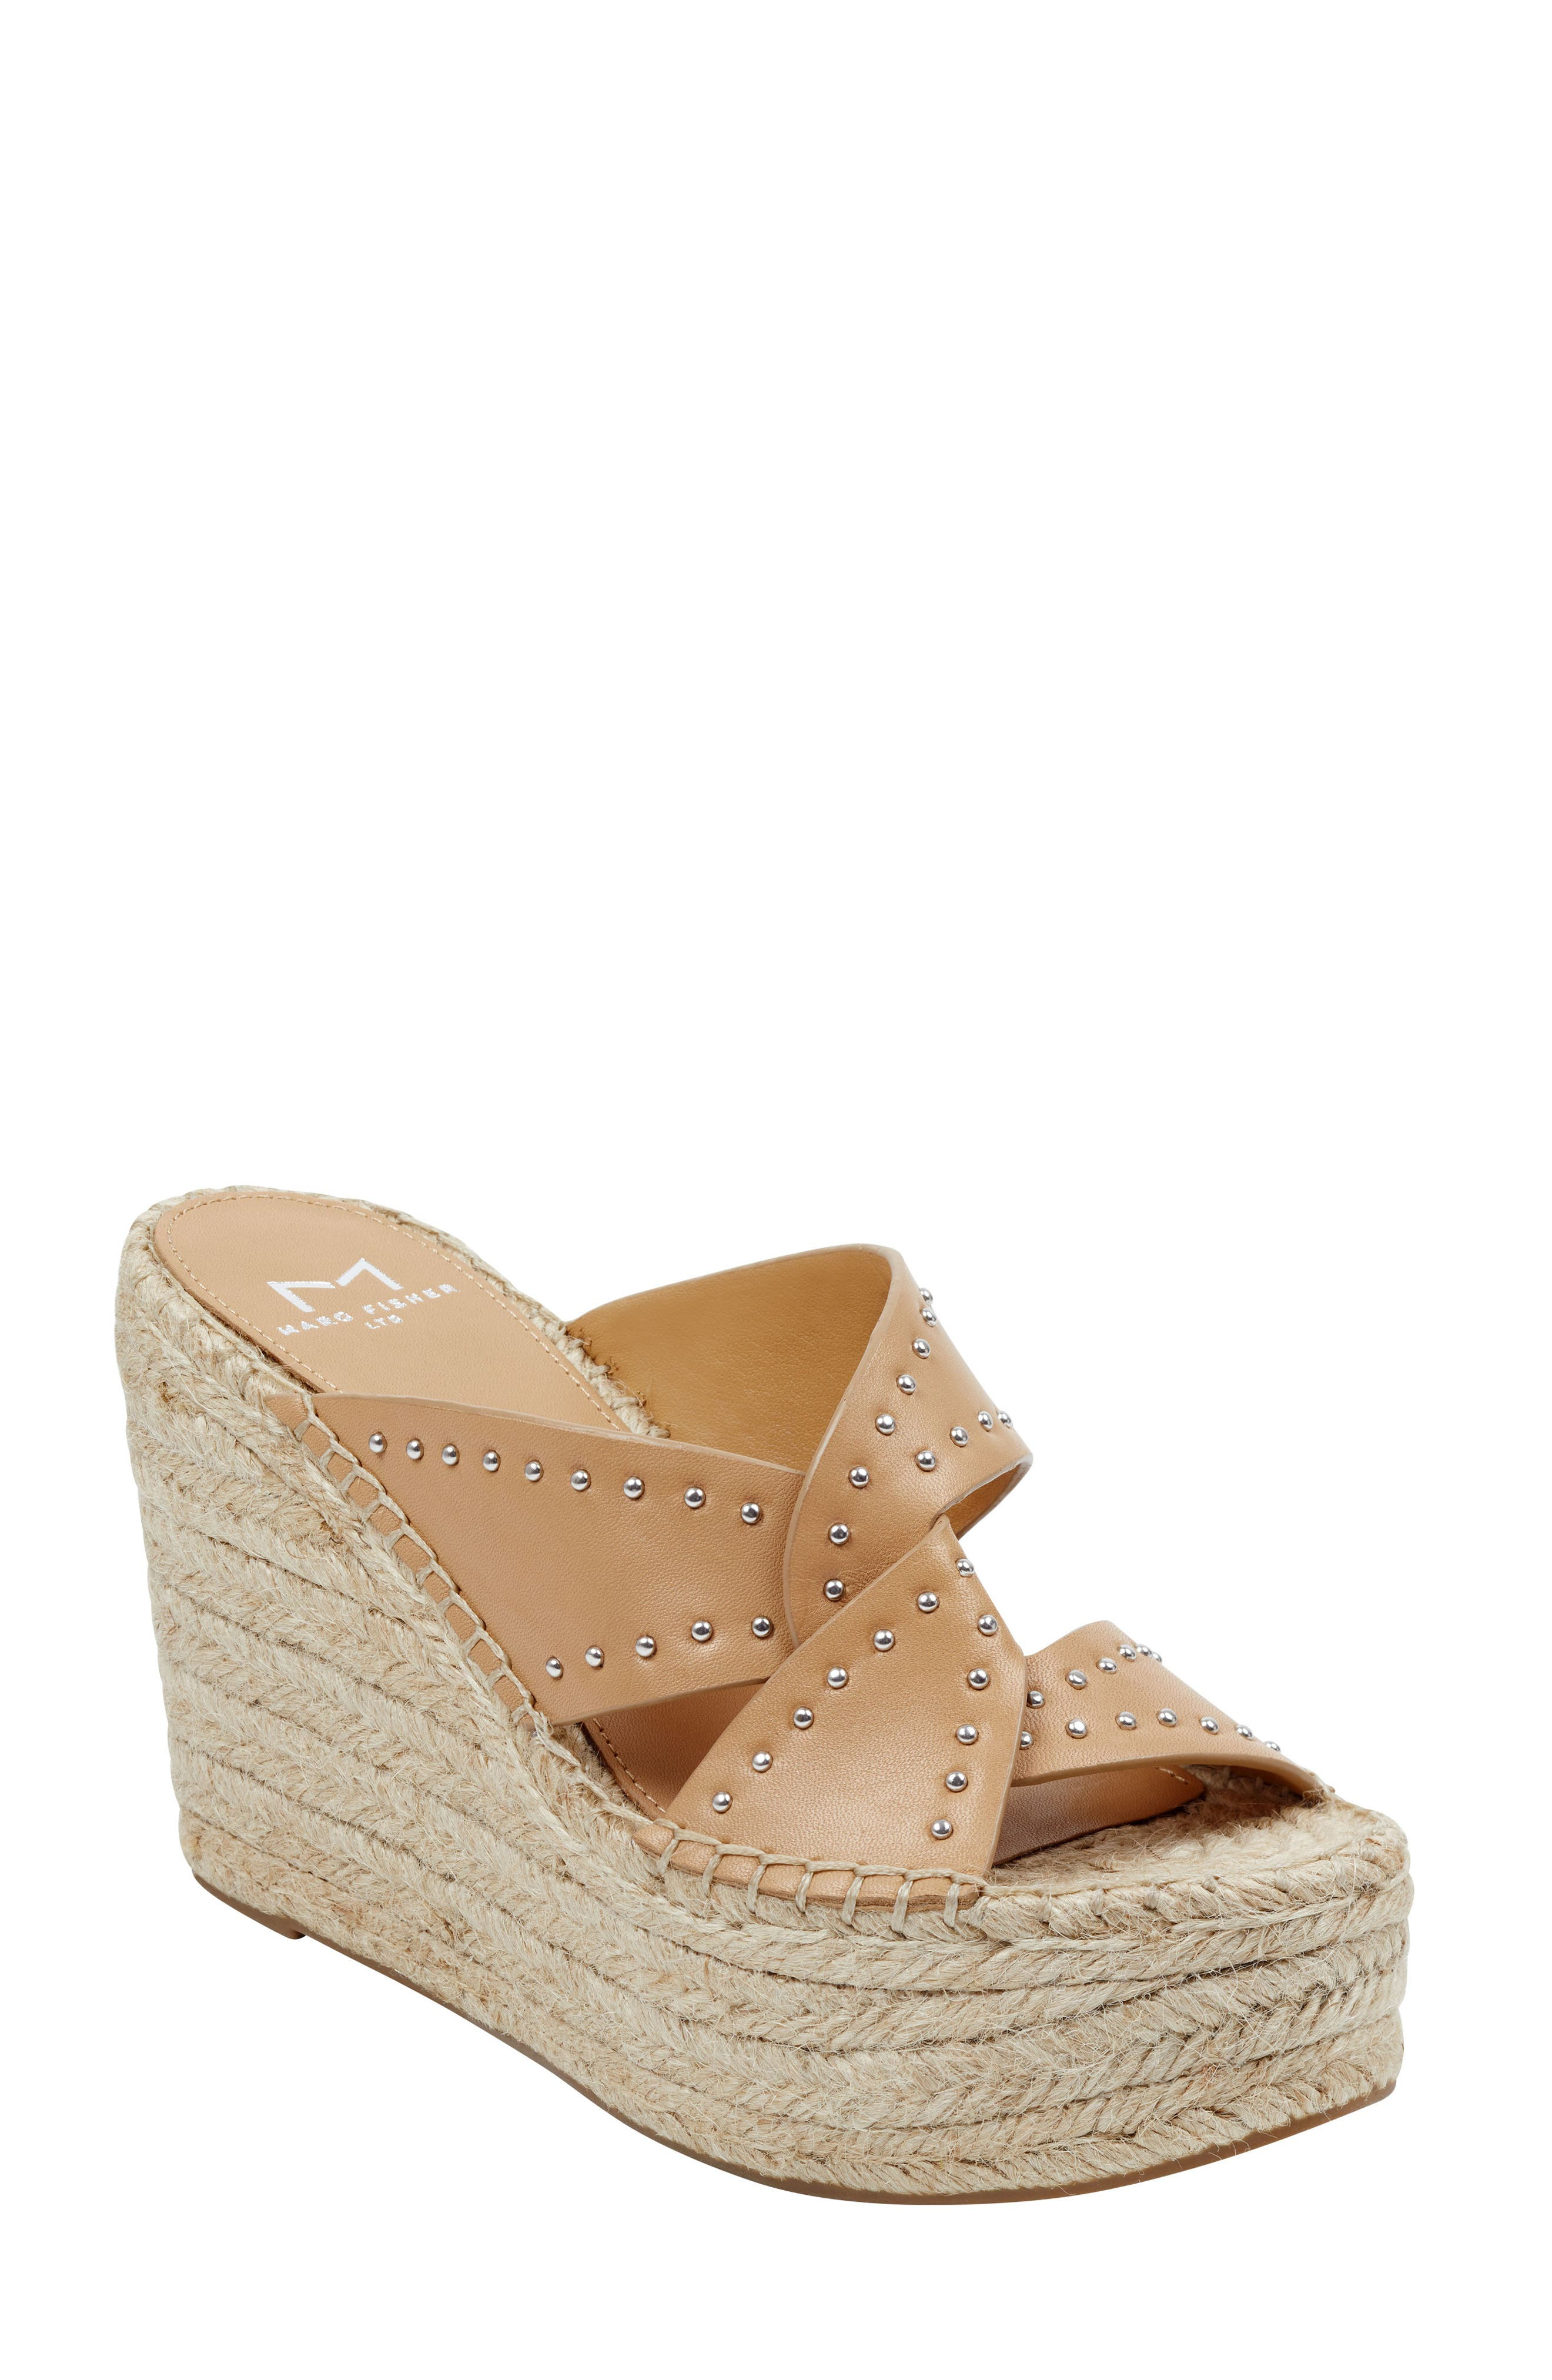 MARC FISHER LTD, Angelina Espadrille Wedge, Main thumbnail 1, color, TAN LEATHER